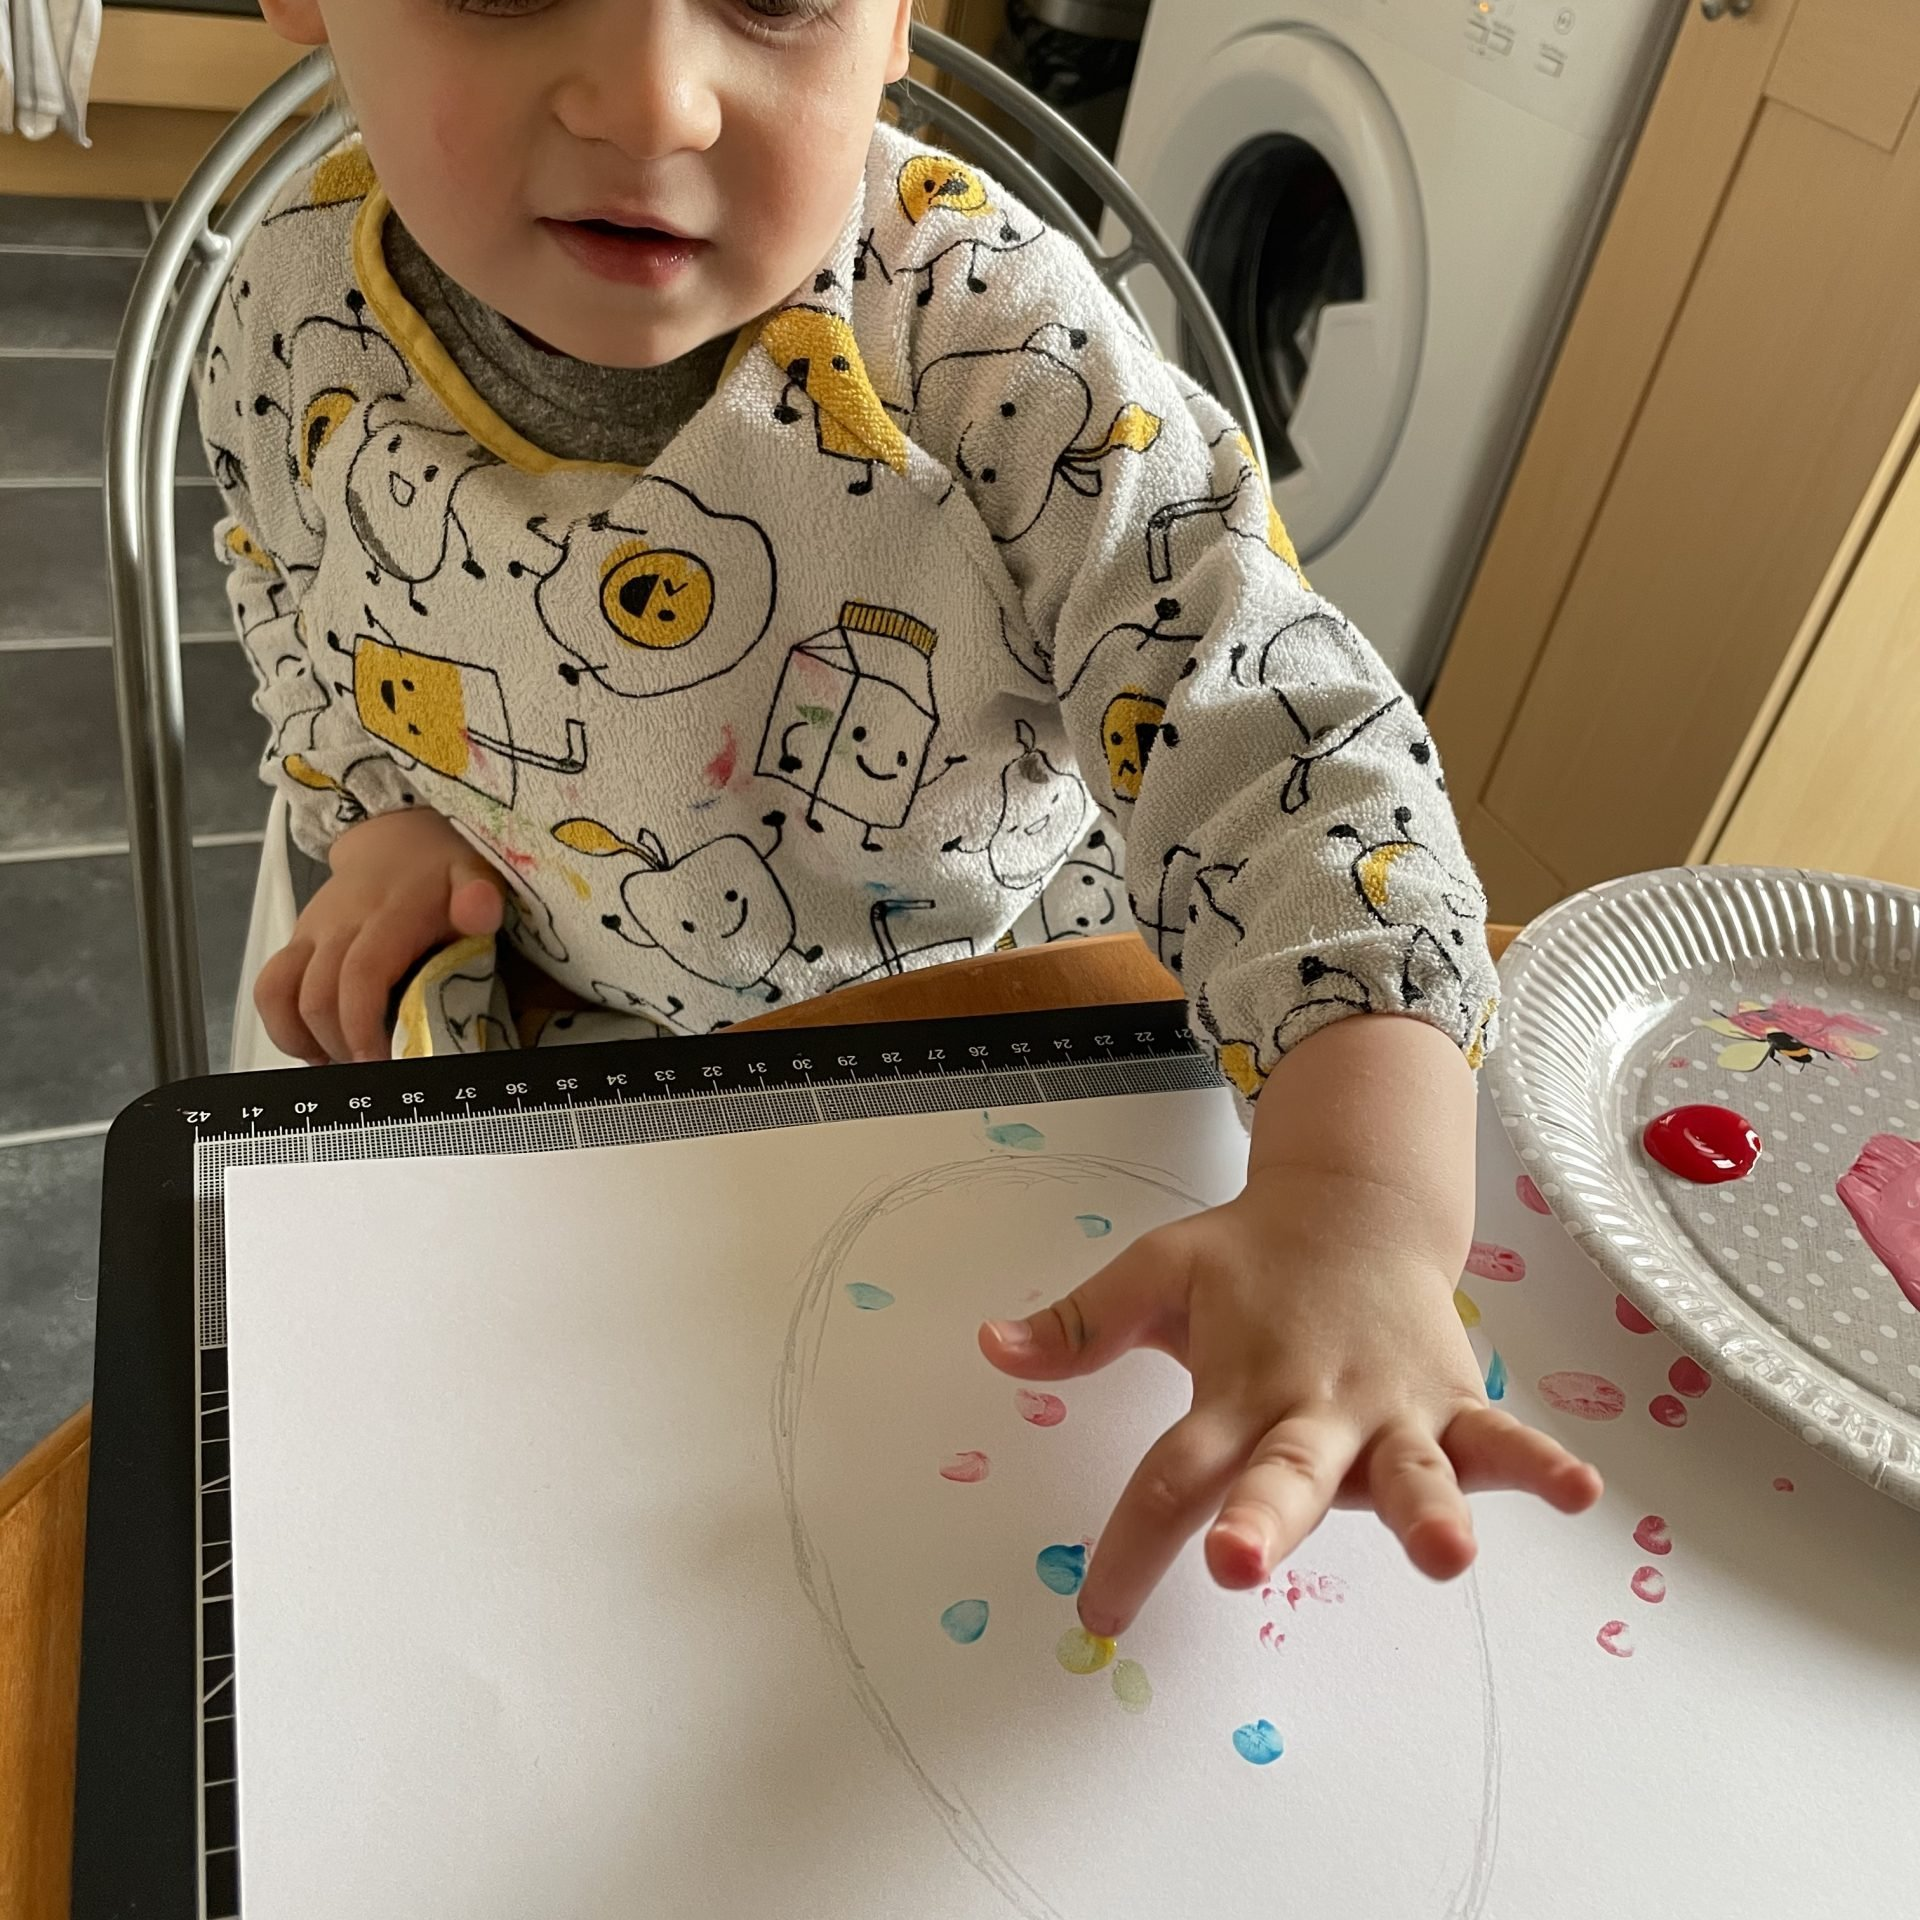 Little J is sat at the table wearing a yellow and white apron/cover. He is using his fingers to paint a picture of an easter egg